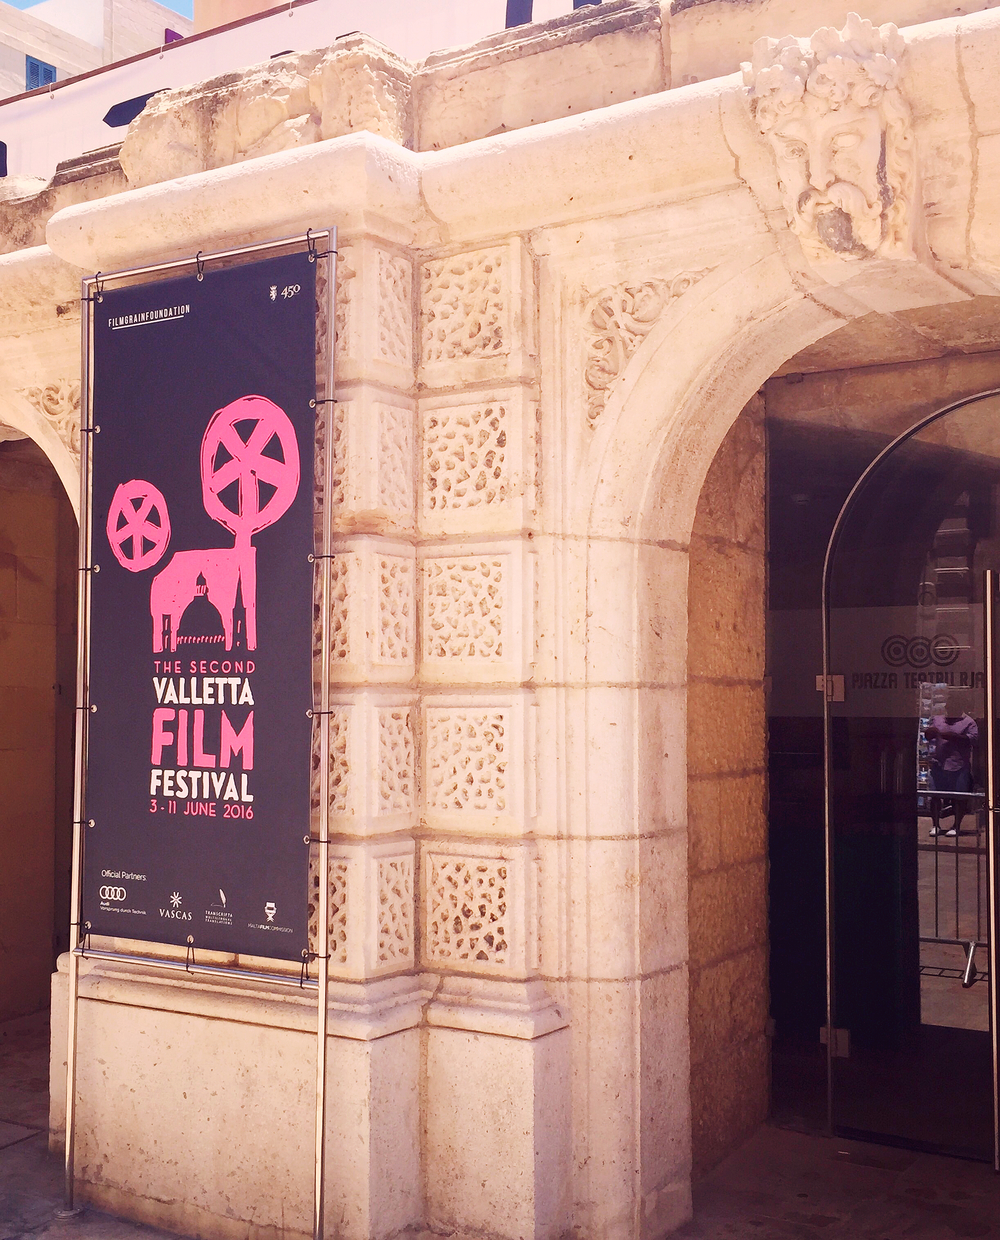 Locanda La Gelsomina loves Valletta Film Fest 2016